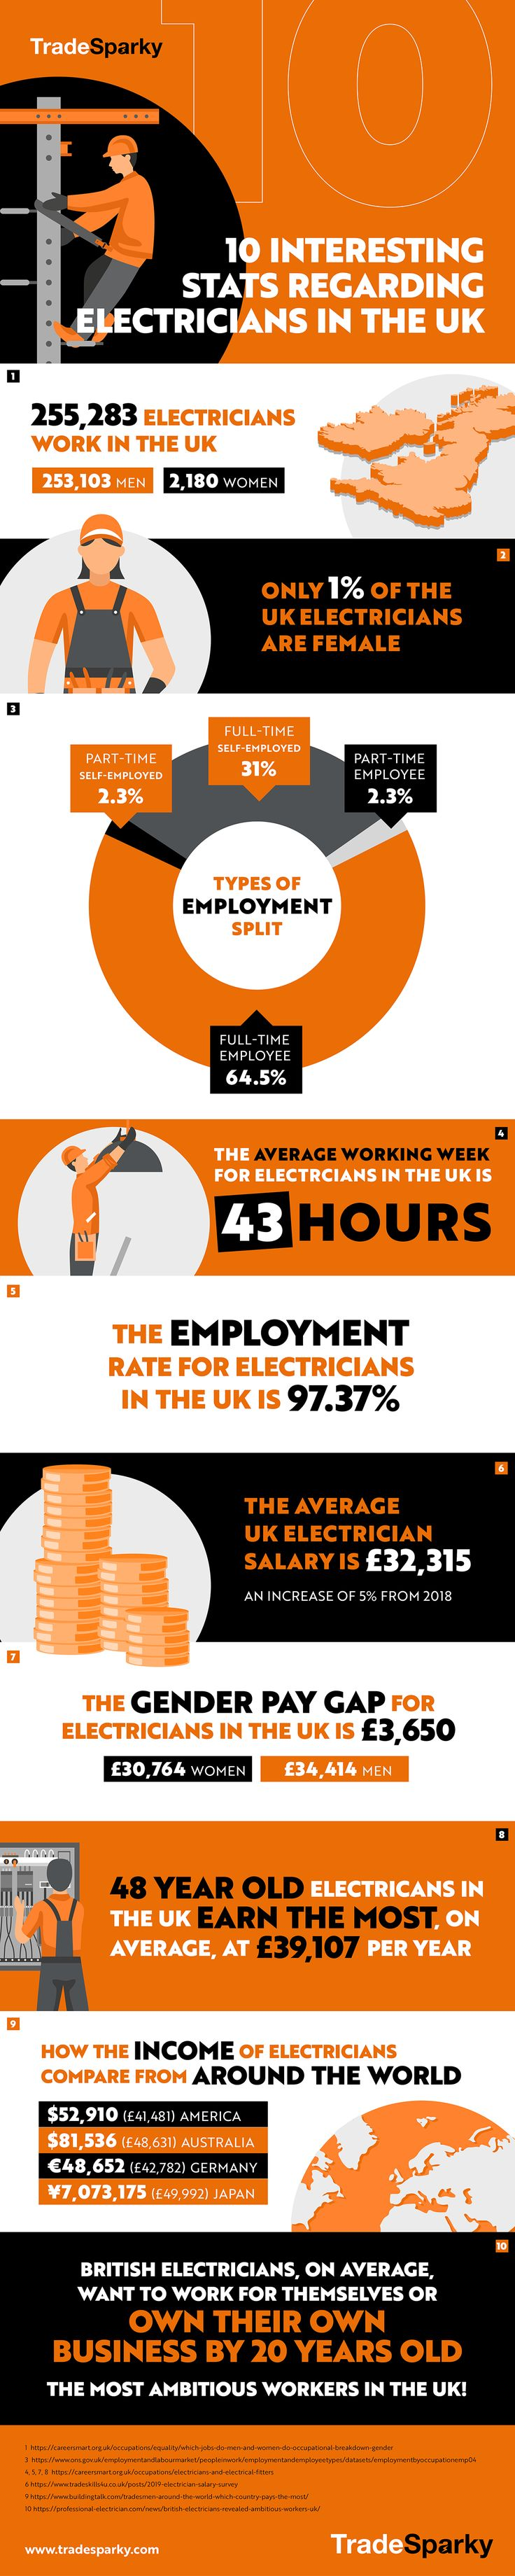 how to be an electrician uk